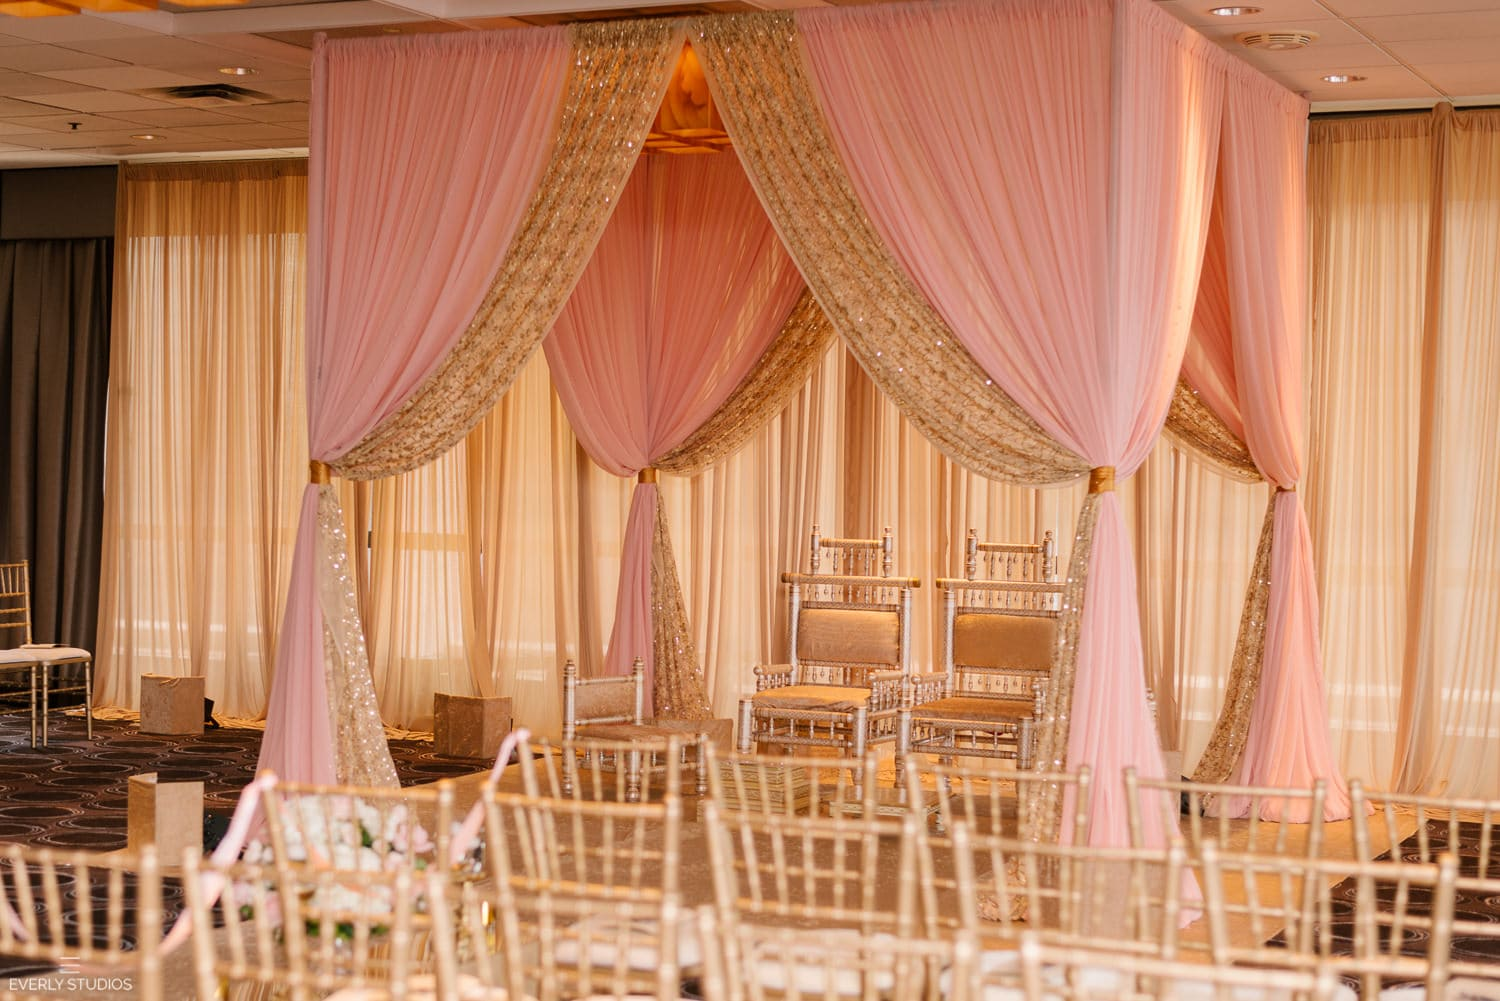 Wolf Point Ballroom wedding Chicago at Holiday Inn Chicago Mart Plaza River North. Photography by Indian wedding photographer NYC Everly Studios, www.everlystudios.com